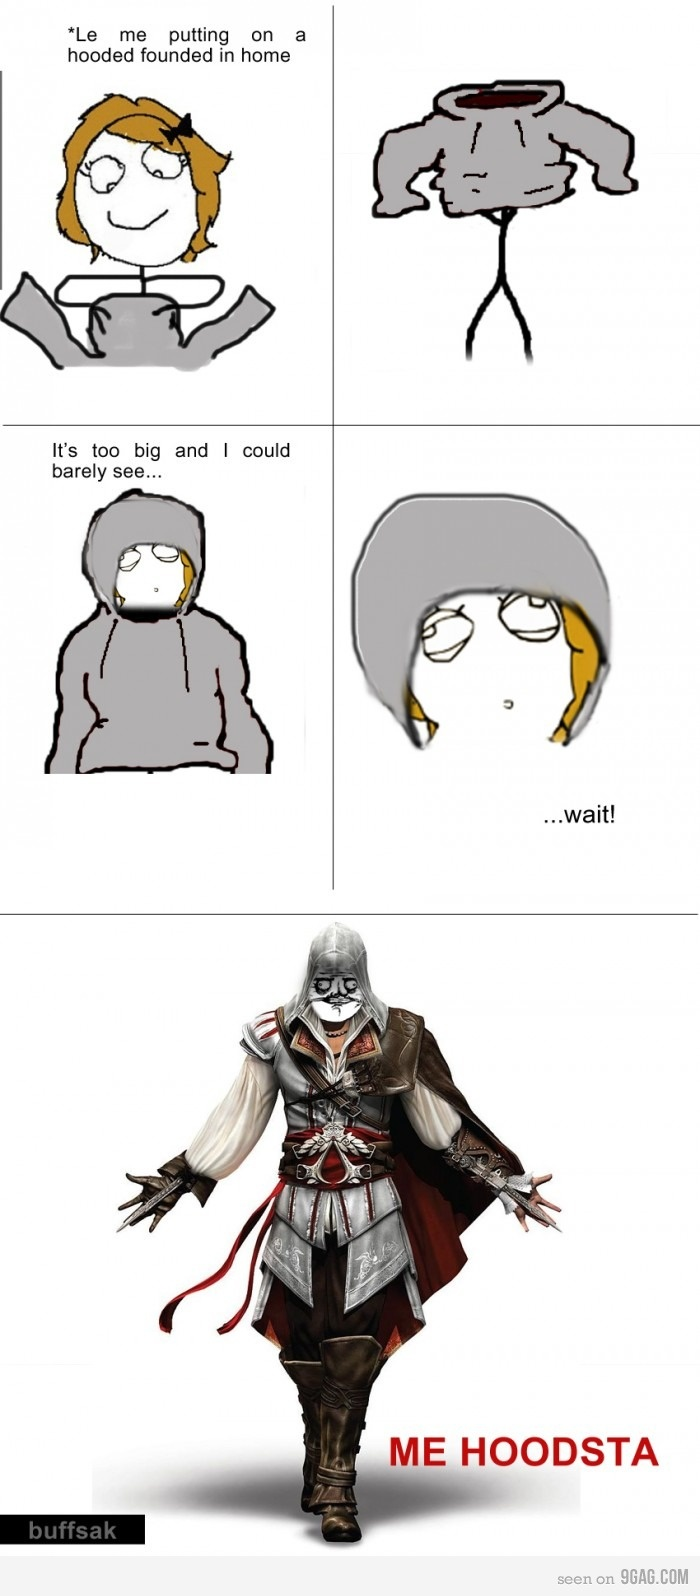 assassins creed: Assassinscreed, Geeky Shit, Assassins Creed 2, Assassins Creed Hoodie, Assassins Creed Meme, Video Games, Geeky Stuff